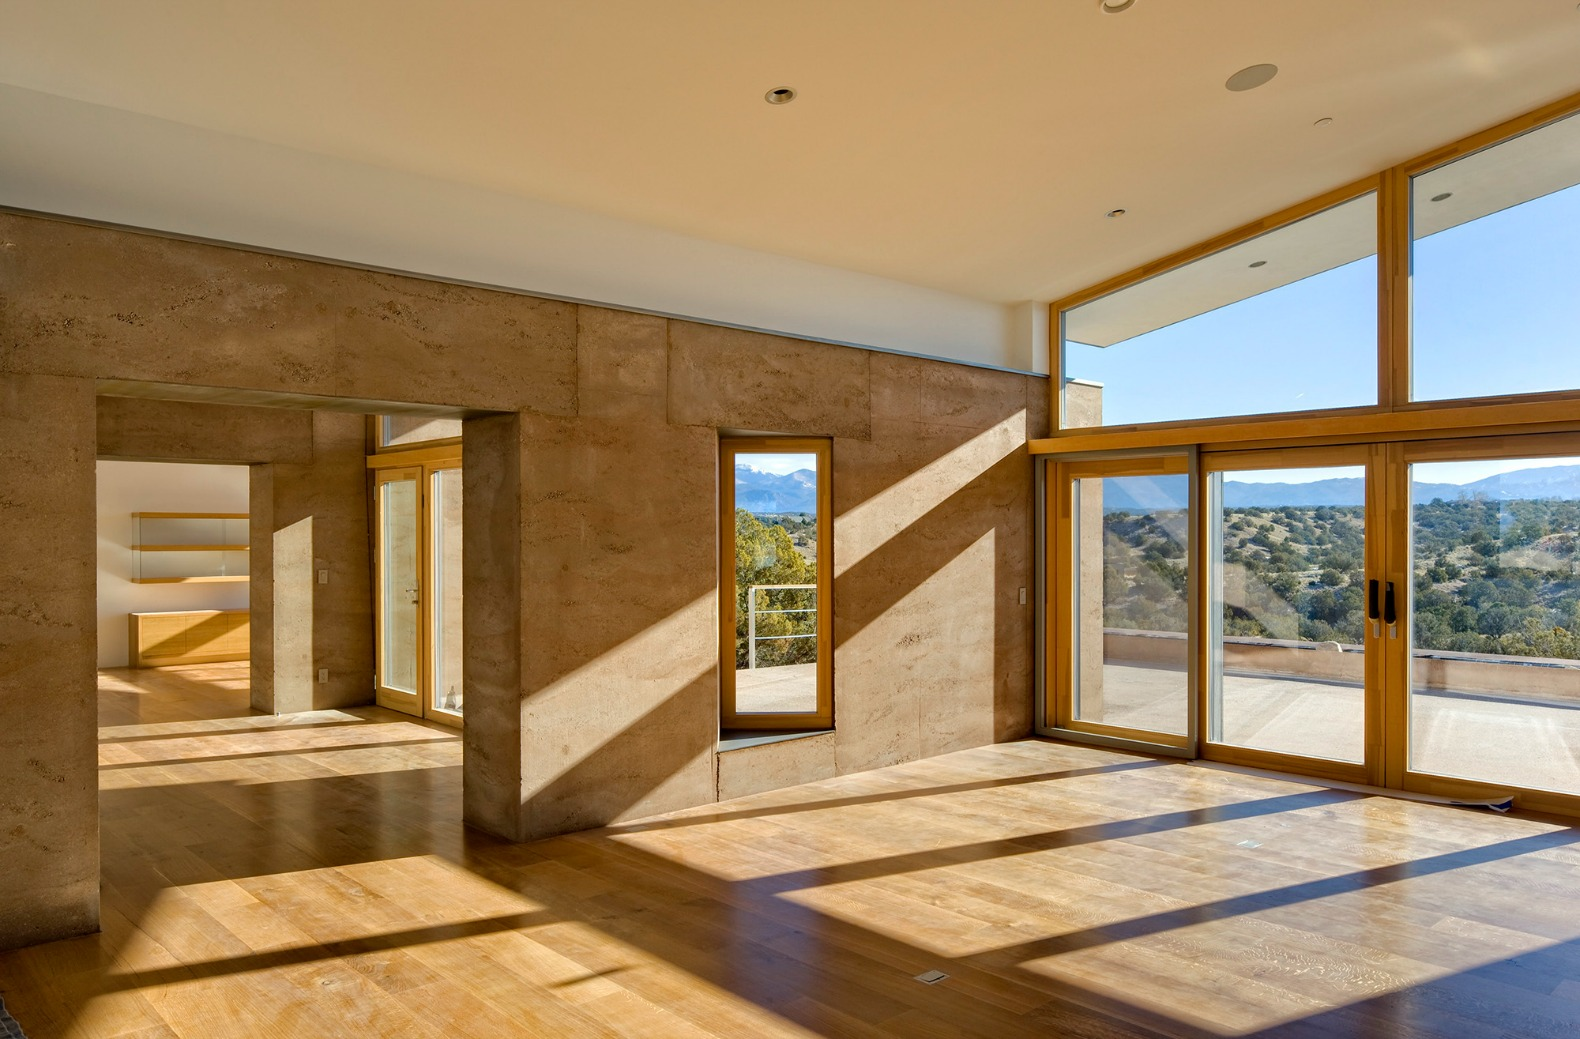 Striking Rammed Earth Home Blends Into The Hills Of Santa